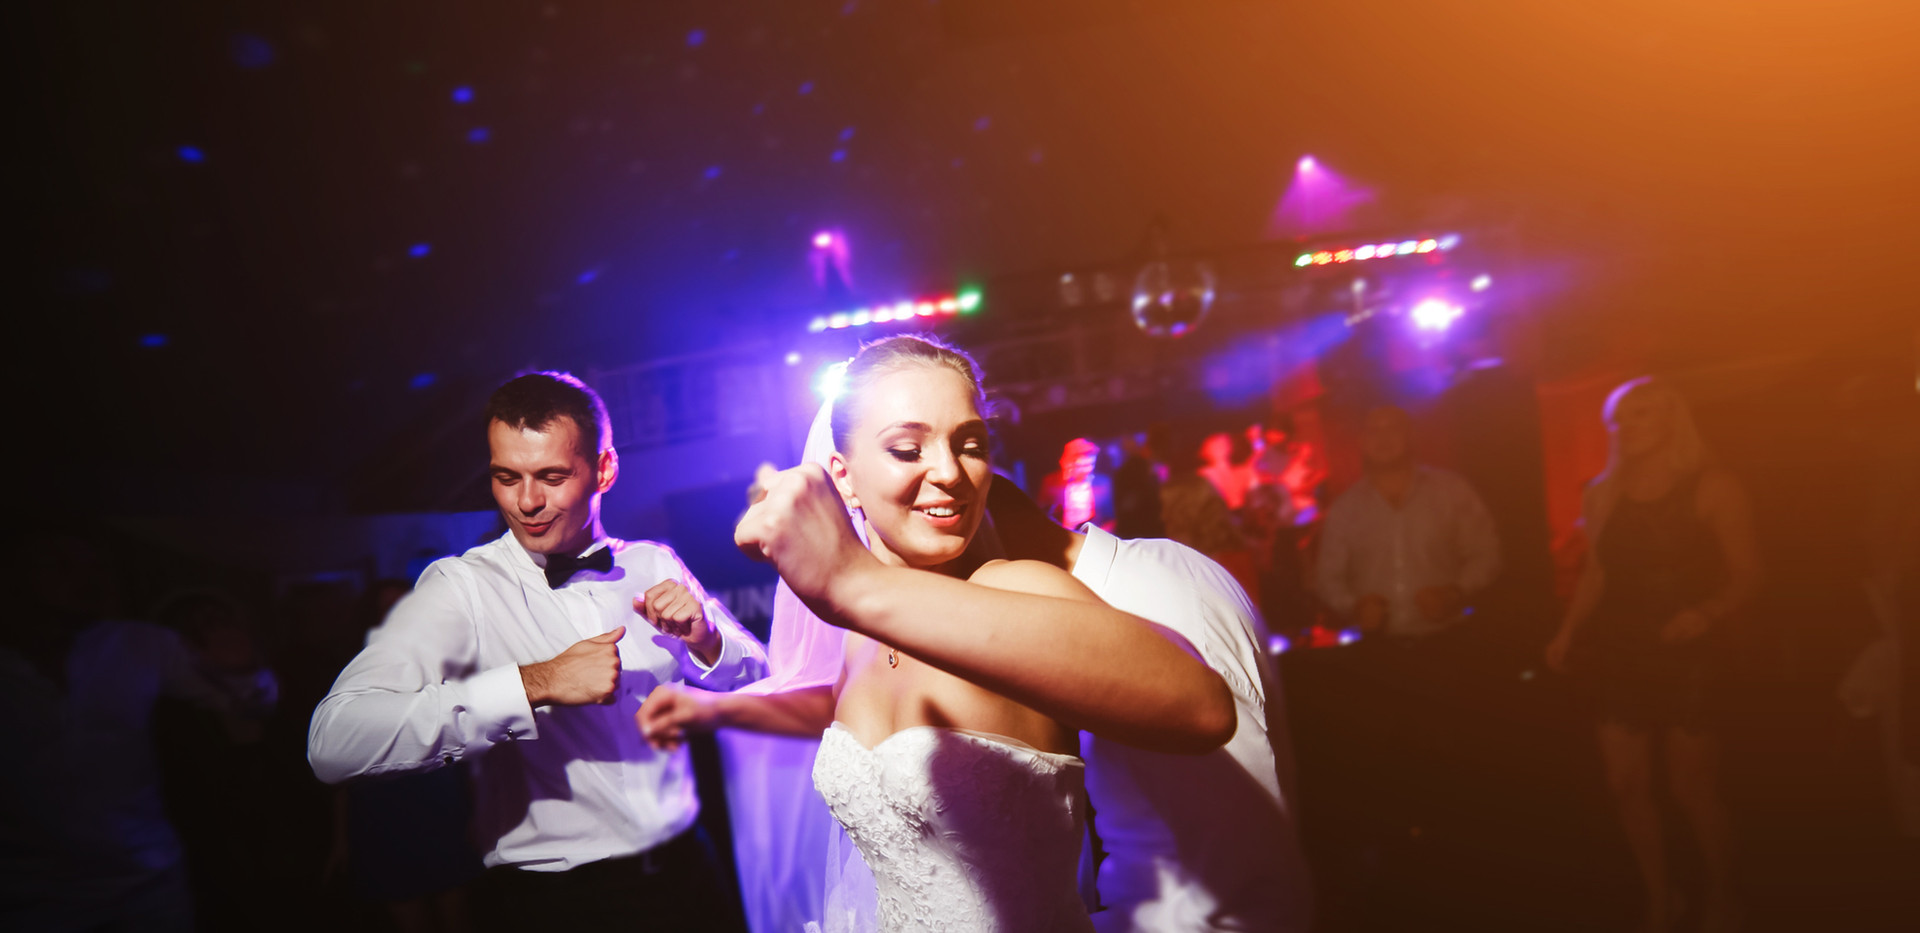 Wedding DJ Service in Southport NC offering an affordable wedding dj.